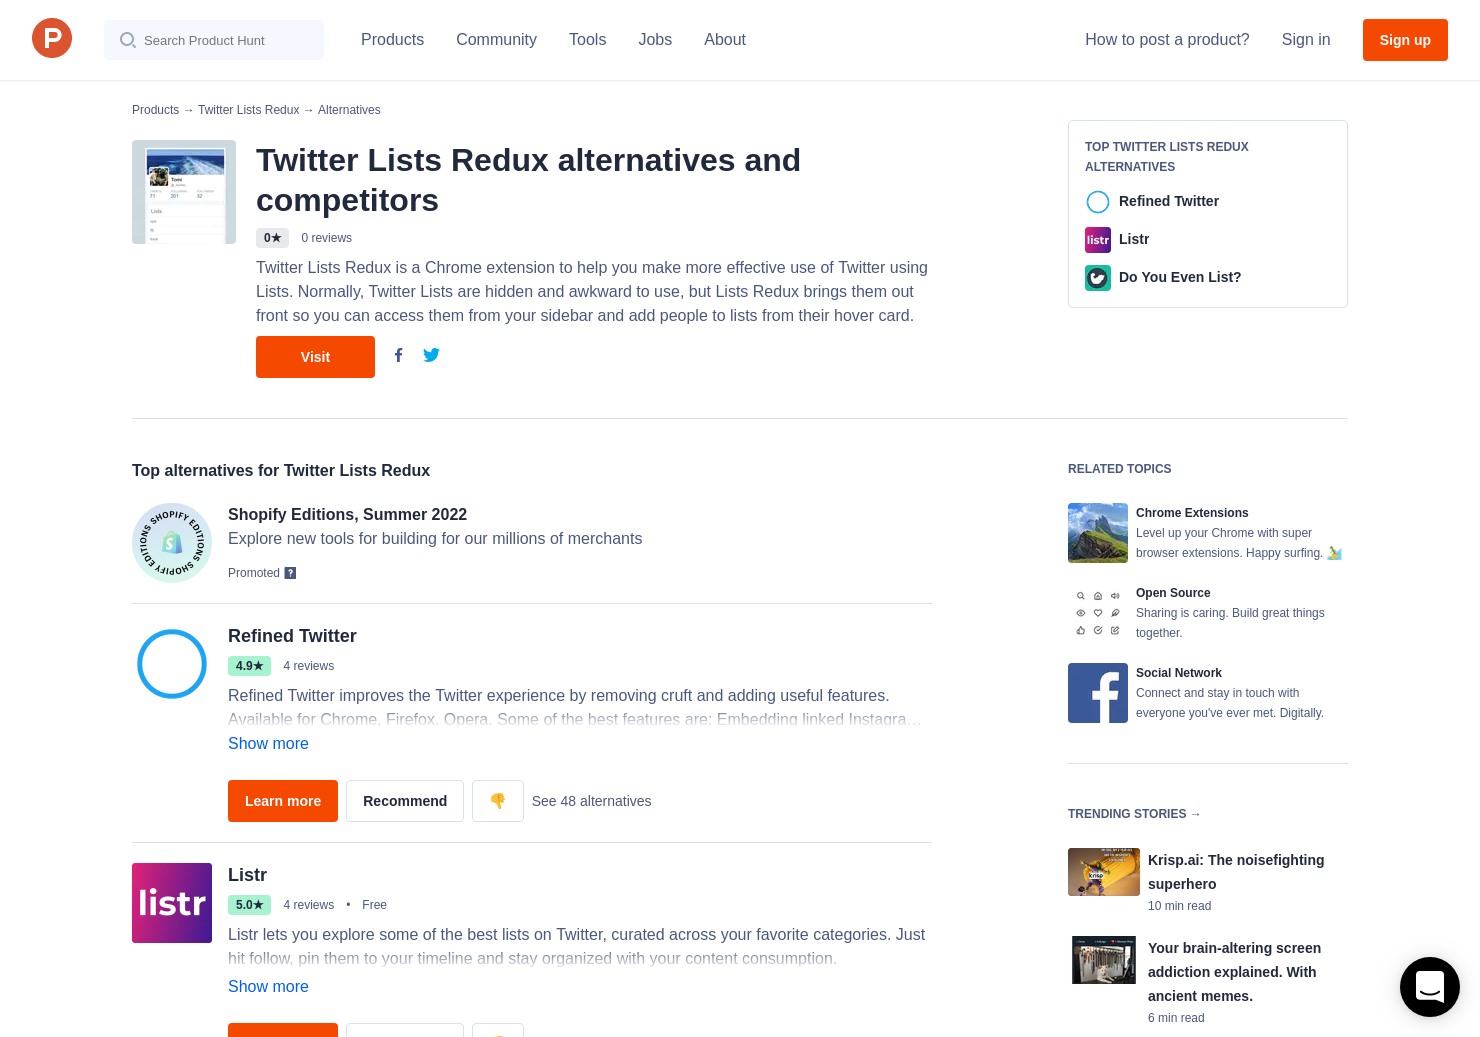 10 Alternatives to Twitter Lists Redux for Chrome Extensions